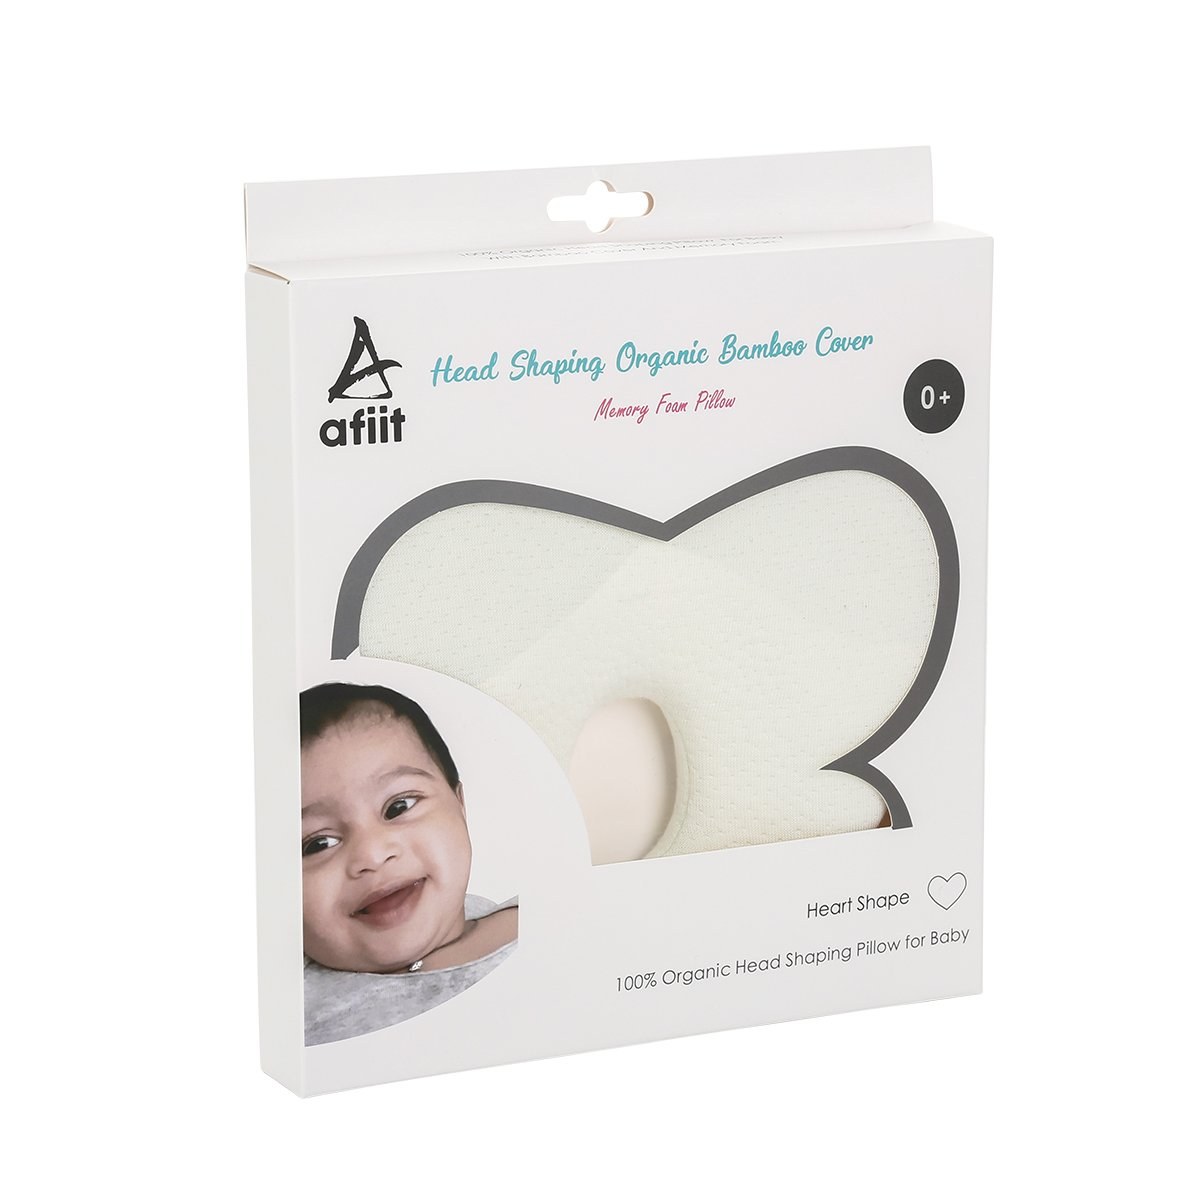 Head Shaping Baby Pillow Prevent Flat Head Syndrome Protection for Anti Plagiocephaly Newborn Memory Foam Pillow with Organic Bamboo Cover Toddler Pillow Breathable Soft Antibacterial Cushion for Head and Neck Support & Improve Infants Posture Heart Shape